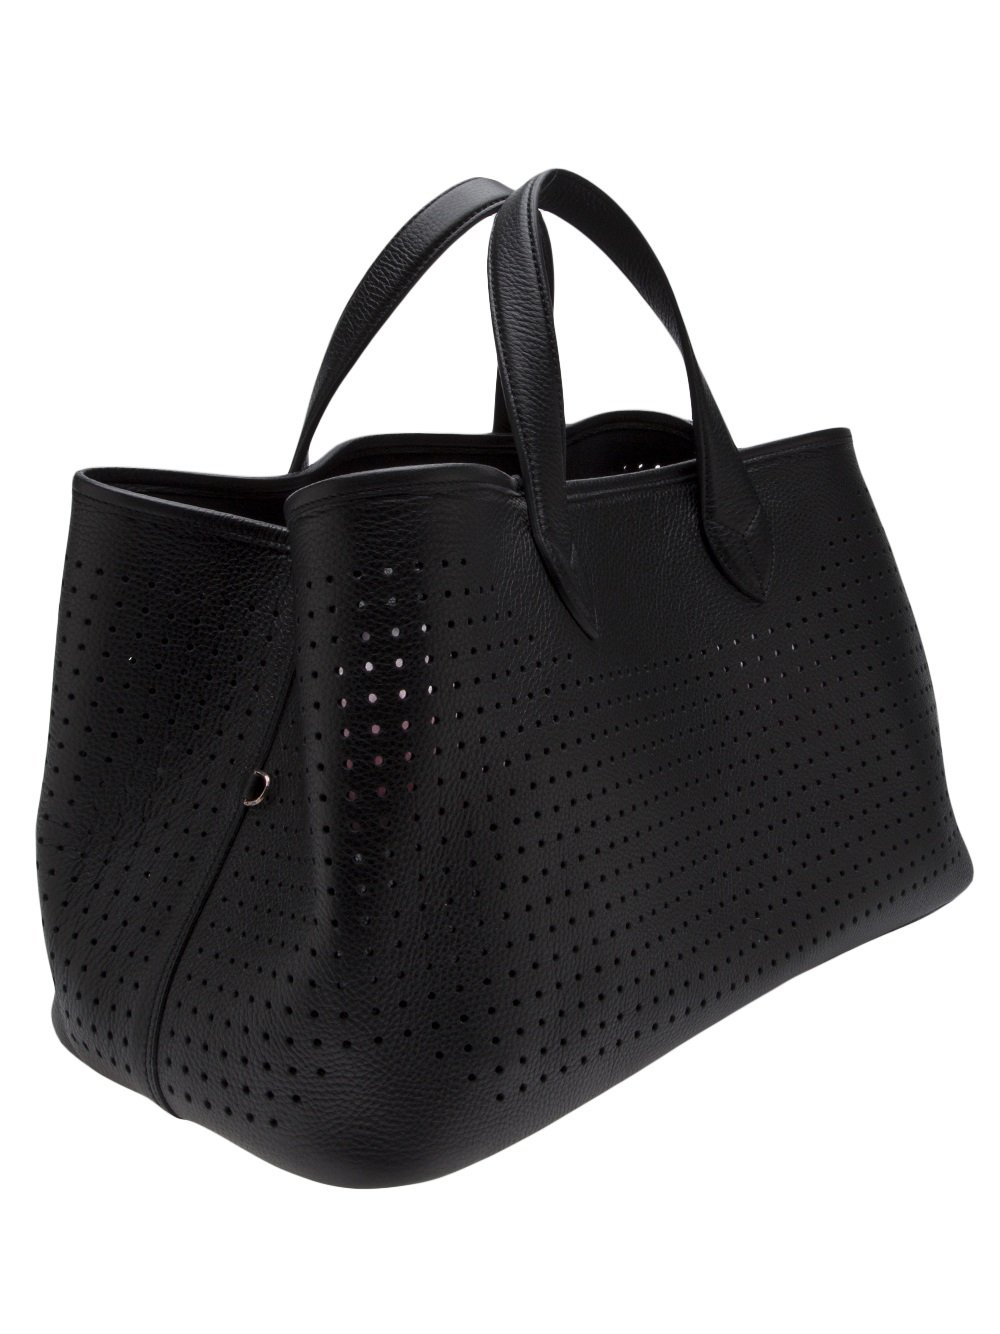 Golden Goose Deluxe Brand Perforated Tote in Black